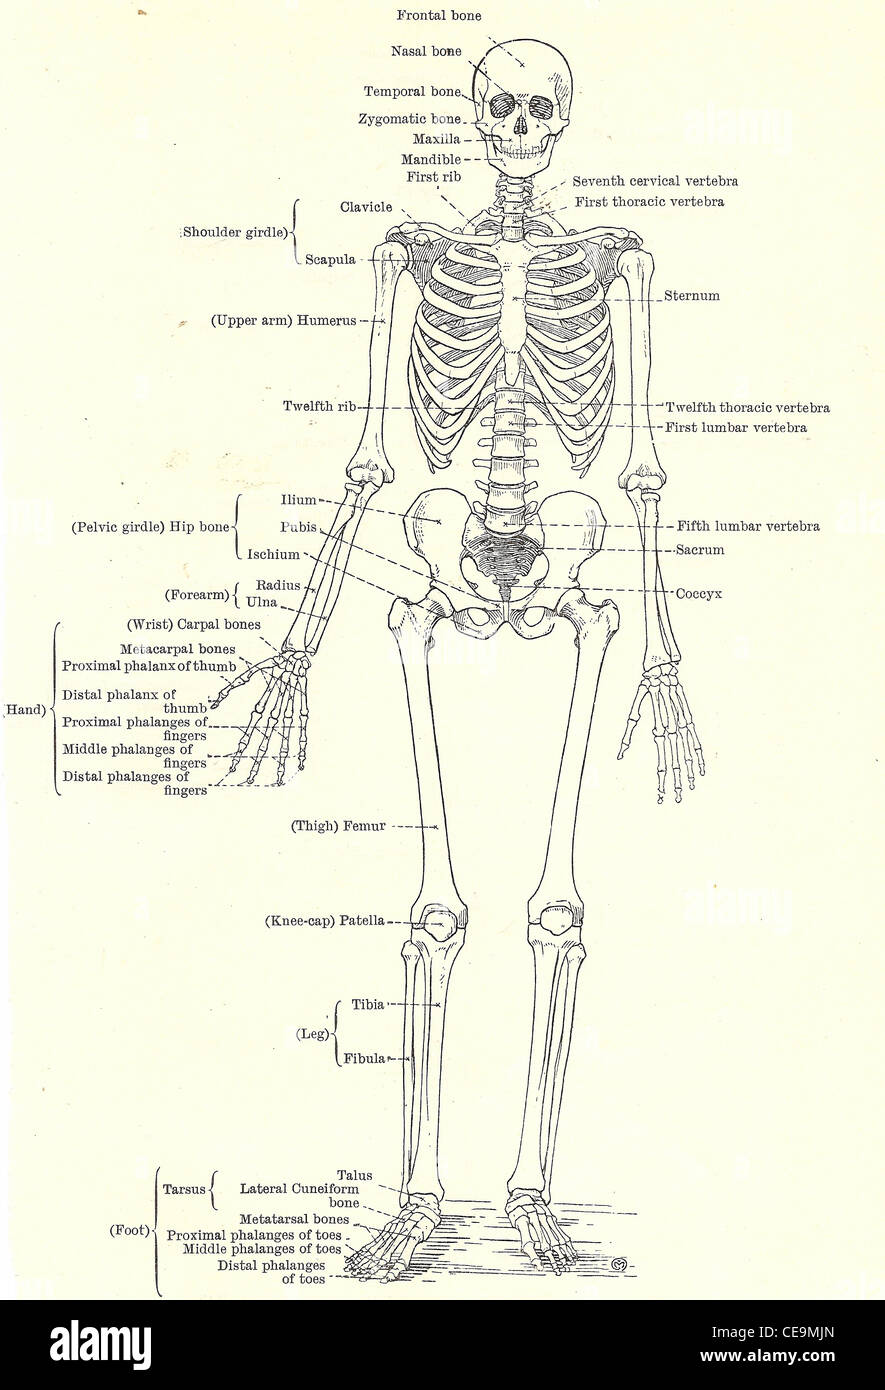 Human Skeleton Full Frontal View From An Early 20th Century